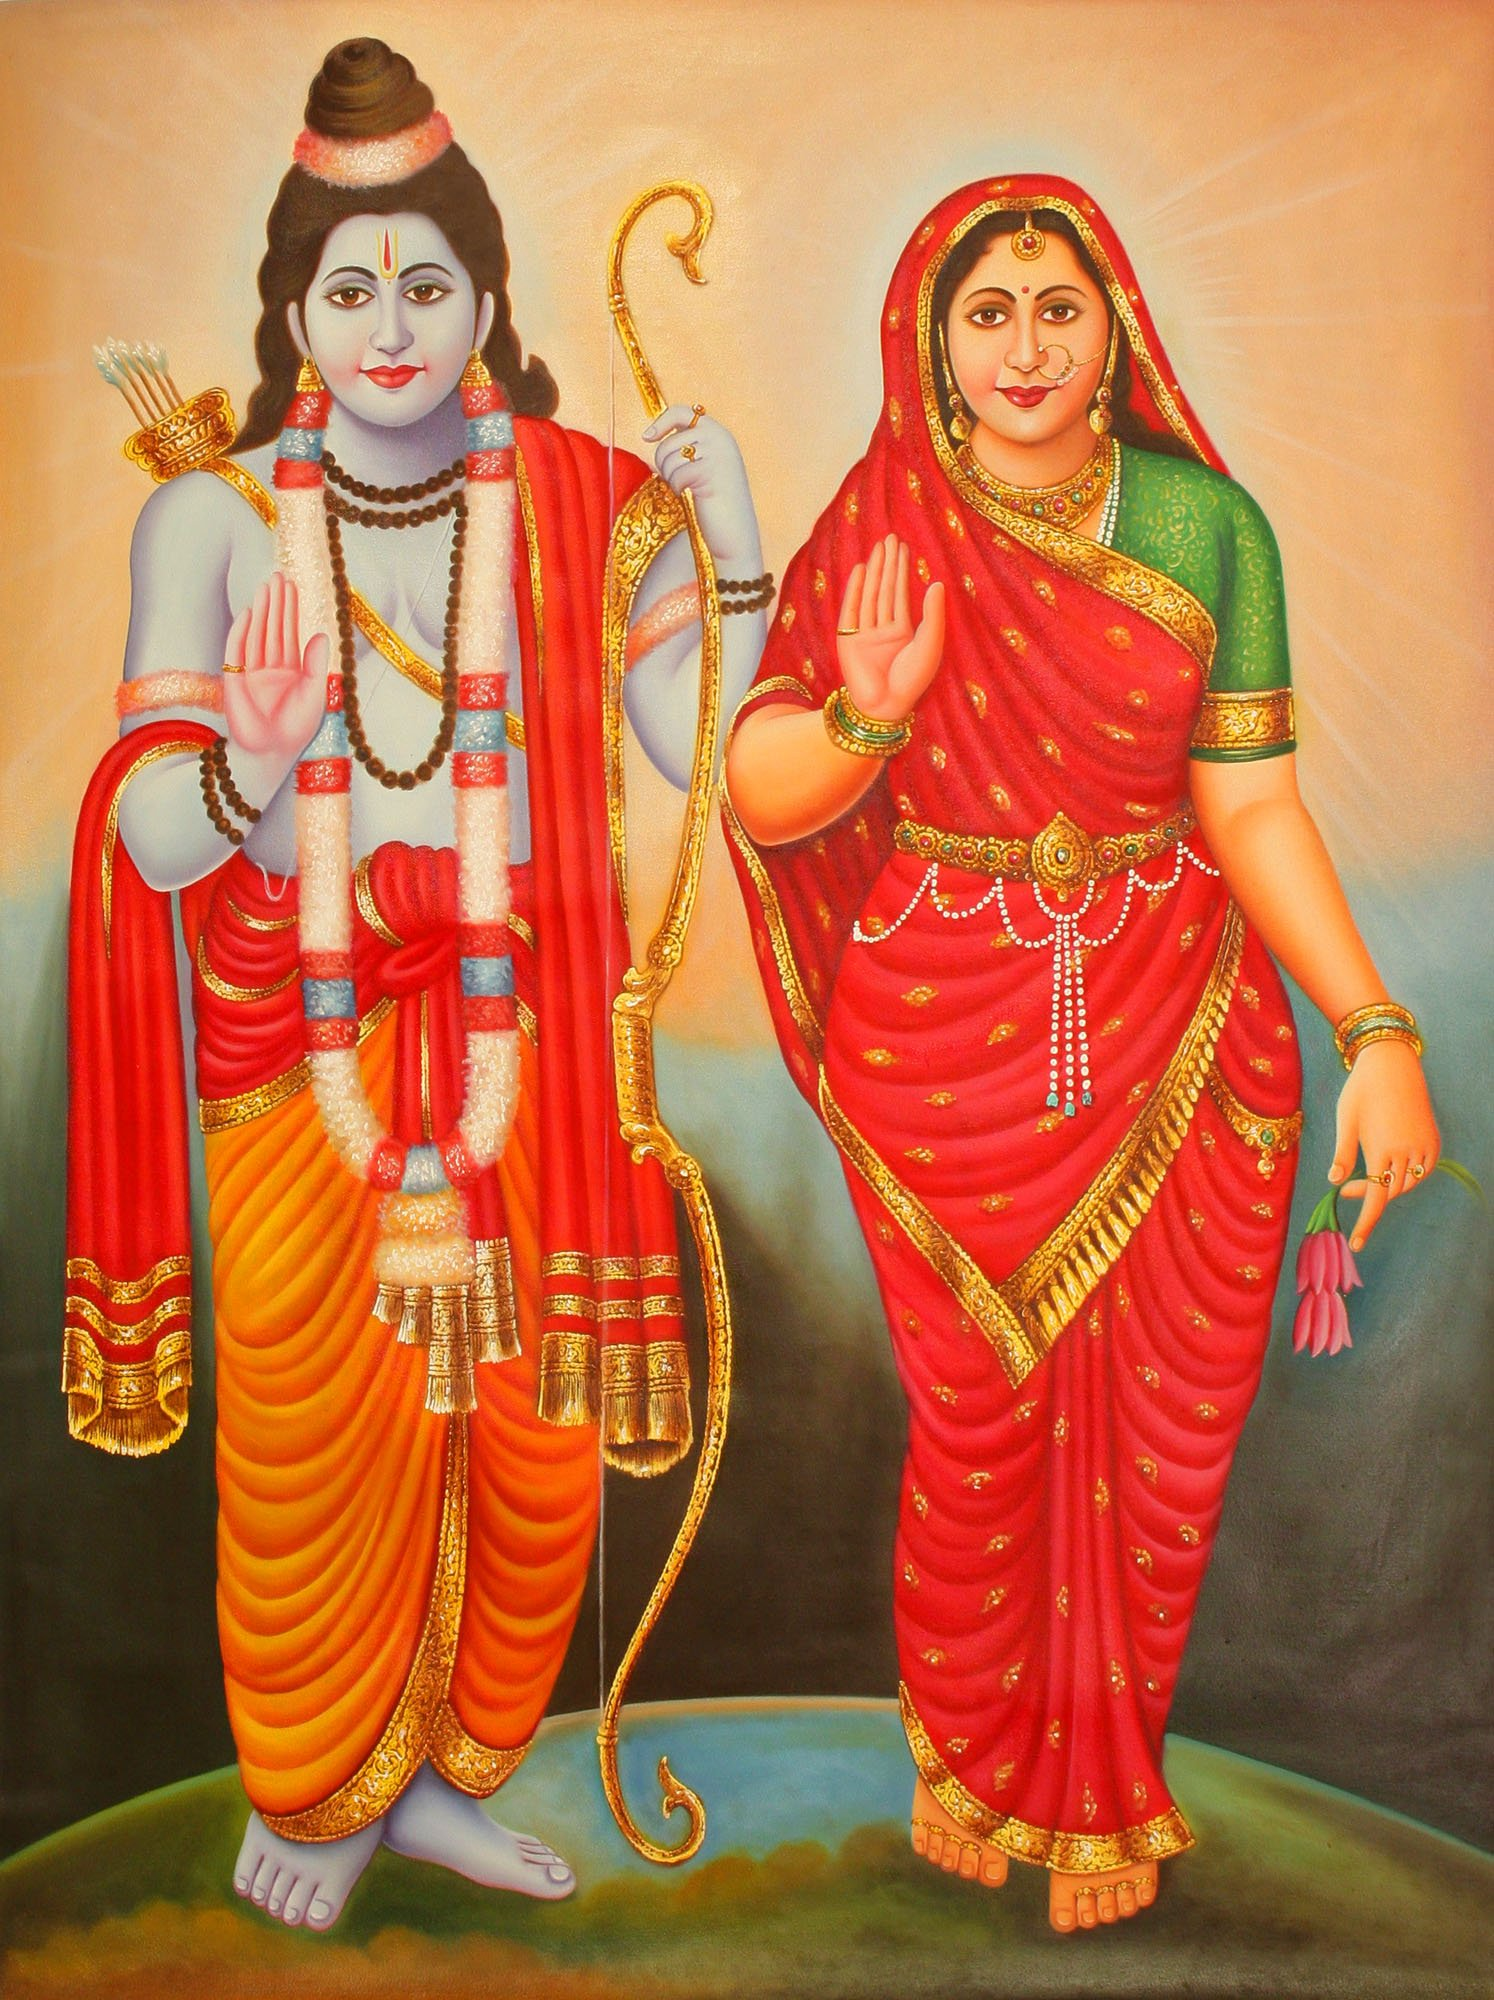 Blessing Goddess Sita and Lord Rama - Oil on Canvas